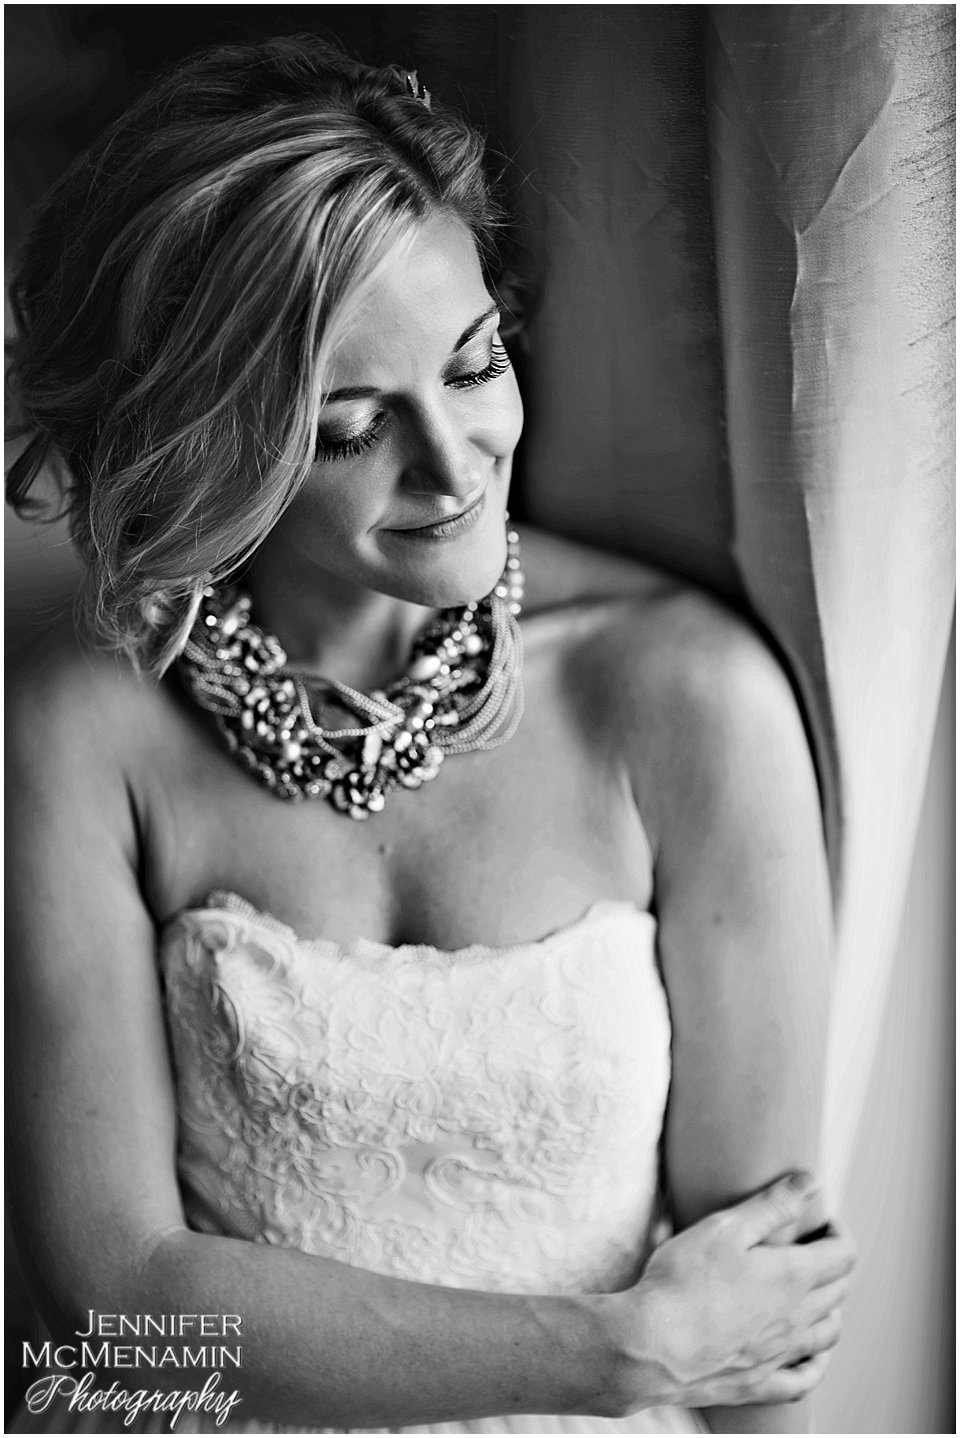 042-MorrisPustilnik_02202bw-0456_Jennifer-McMenamin-Photography-Royal-Sonesta-Harbor-Court-Hotel-wedding-Baltimore-wedding-photographer